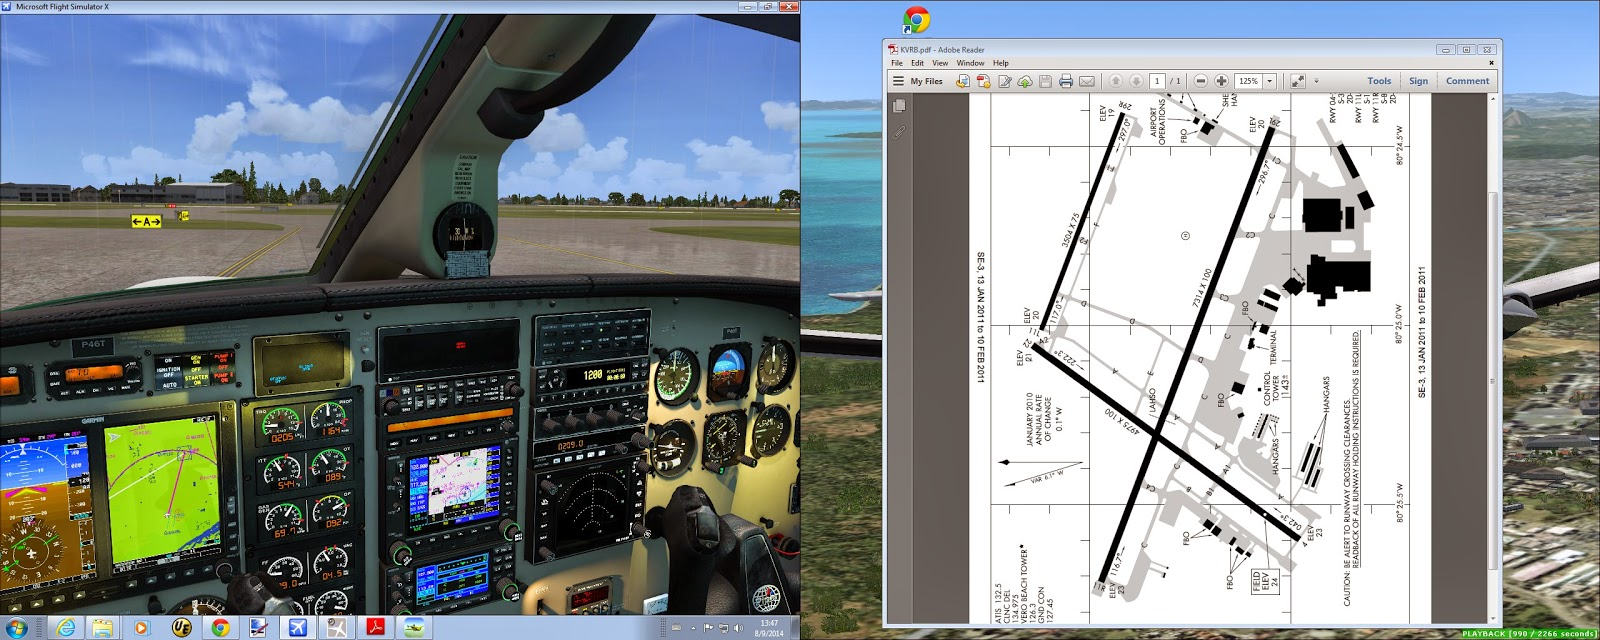 Lord of the wings flight simulation piper malibu delivery tour at the ramp 8 inspecting aerodrome chart pooptronica